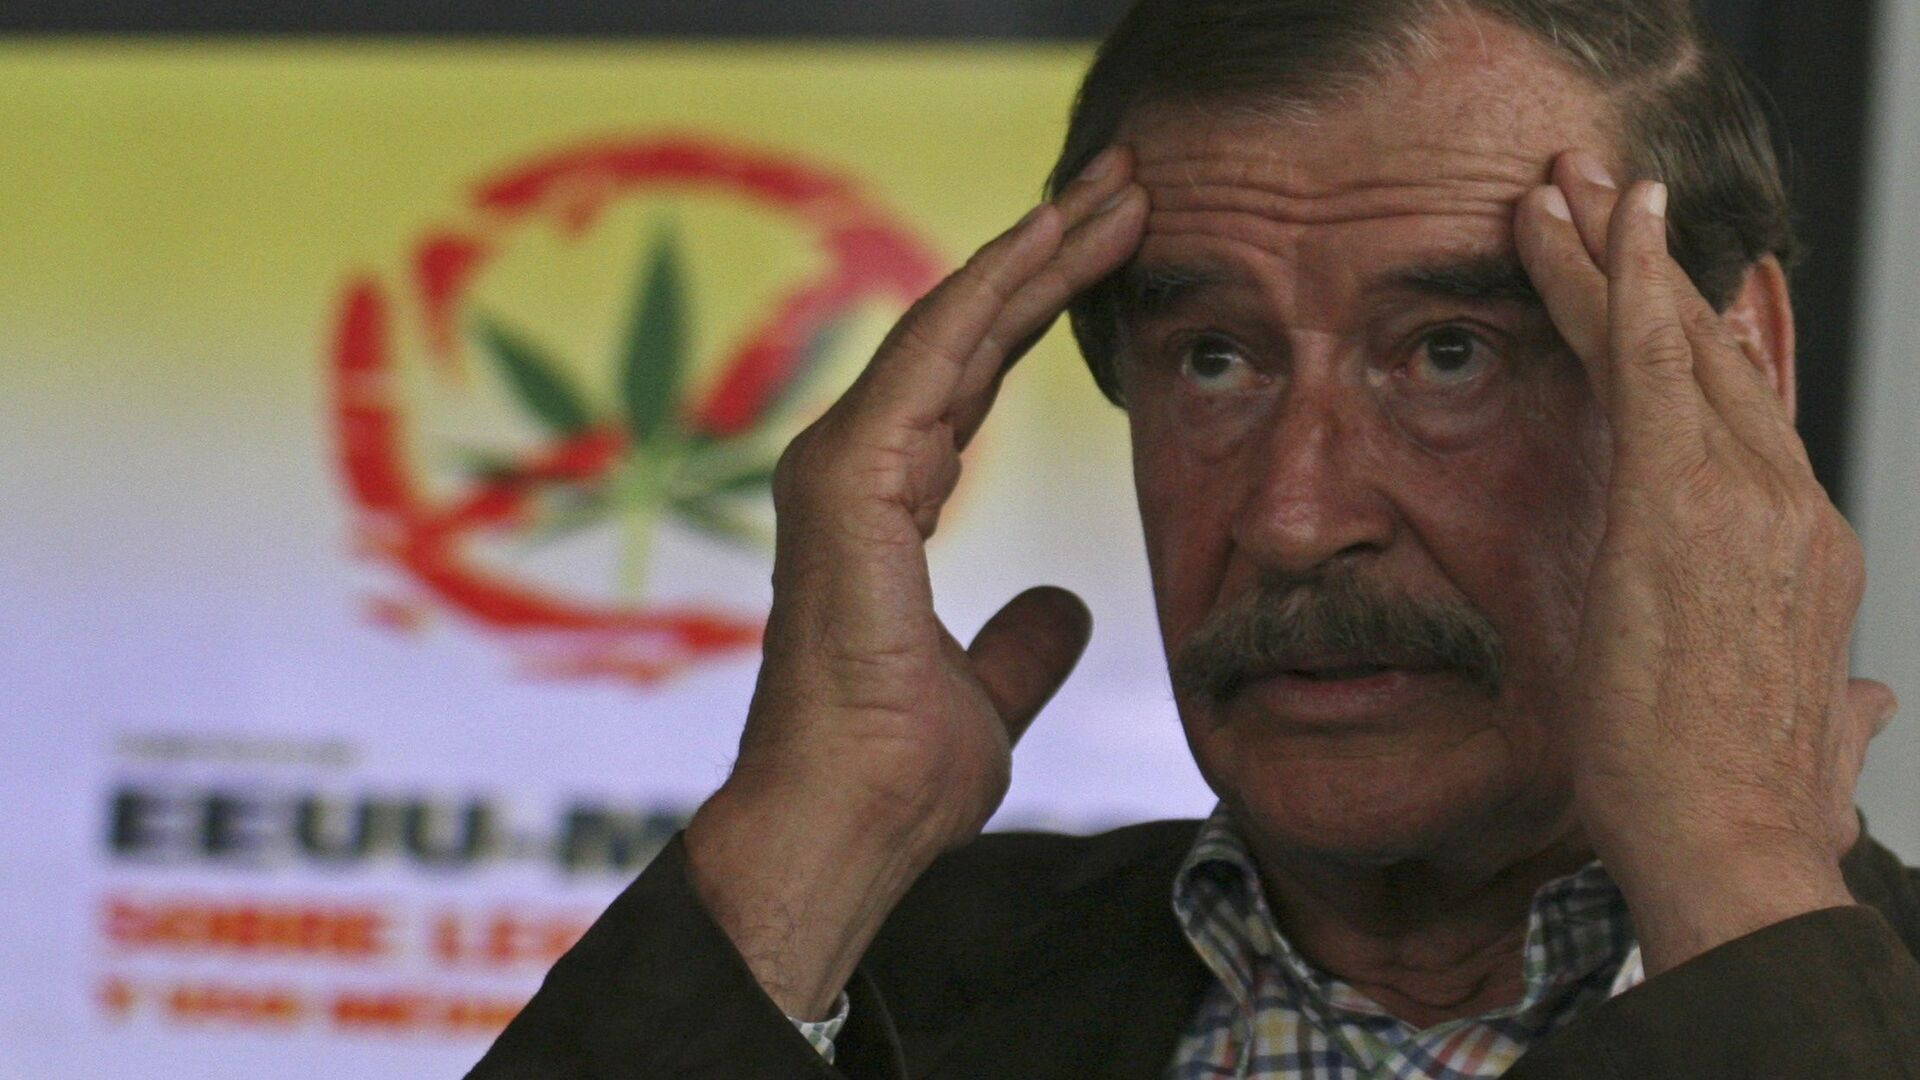 Mexico's former president Vicente Fox speaks during a news conference on the first day of the U.S.-Mexico Symposium on Legalization and Medical Use of Cannabis in San Francisco del Rincon, Mexico, Thursday, July 18, 2013 - Sputnik Mundo, 1920, 28.09.2021